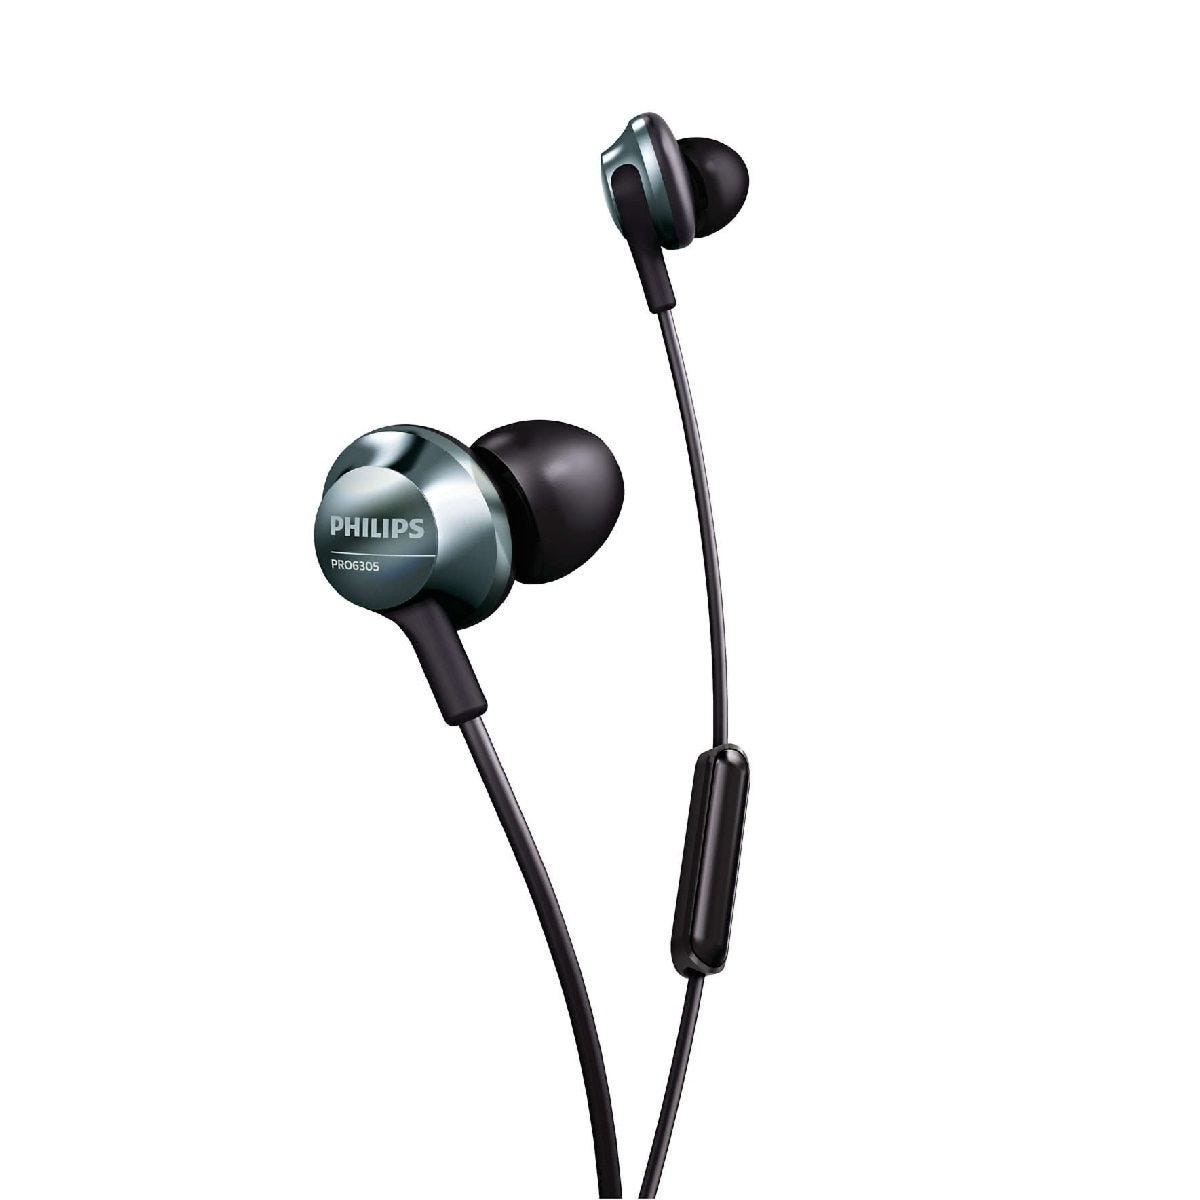 Philips Pro-Series Earphone with Mic